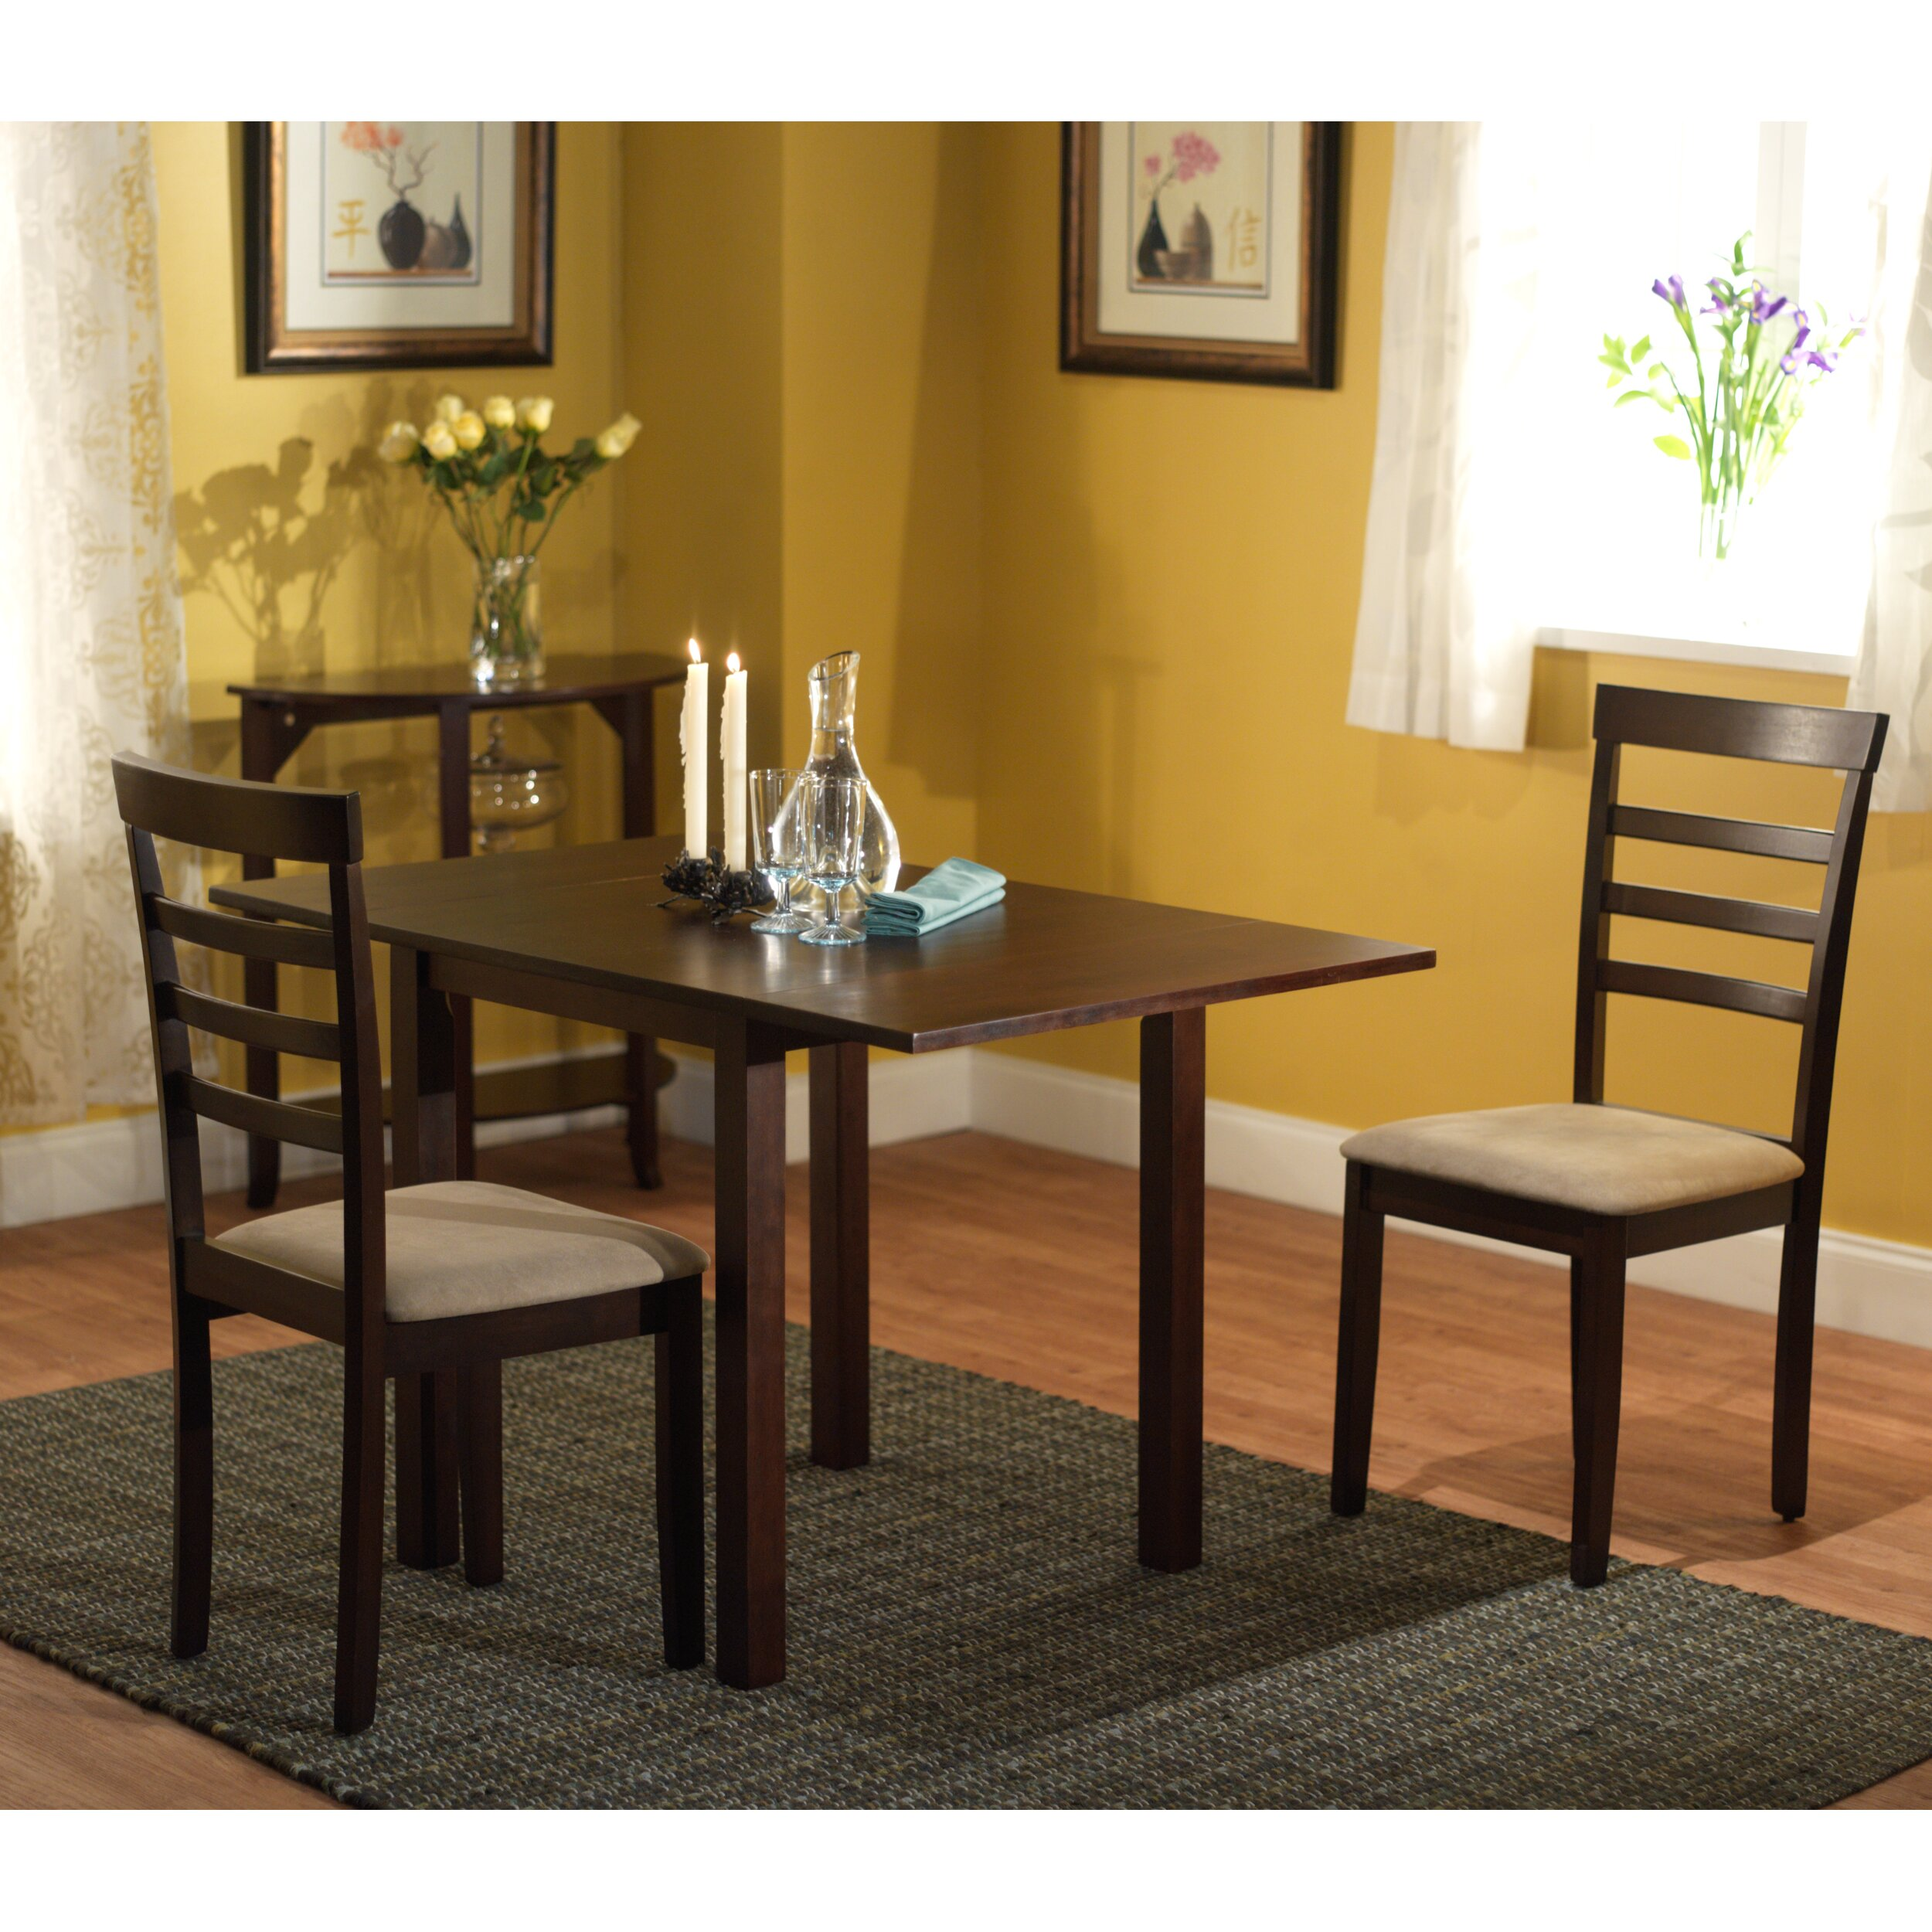 madison garden dining set collections